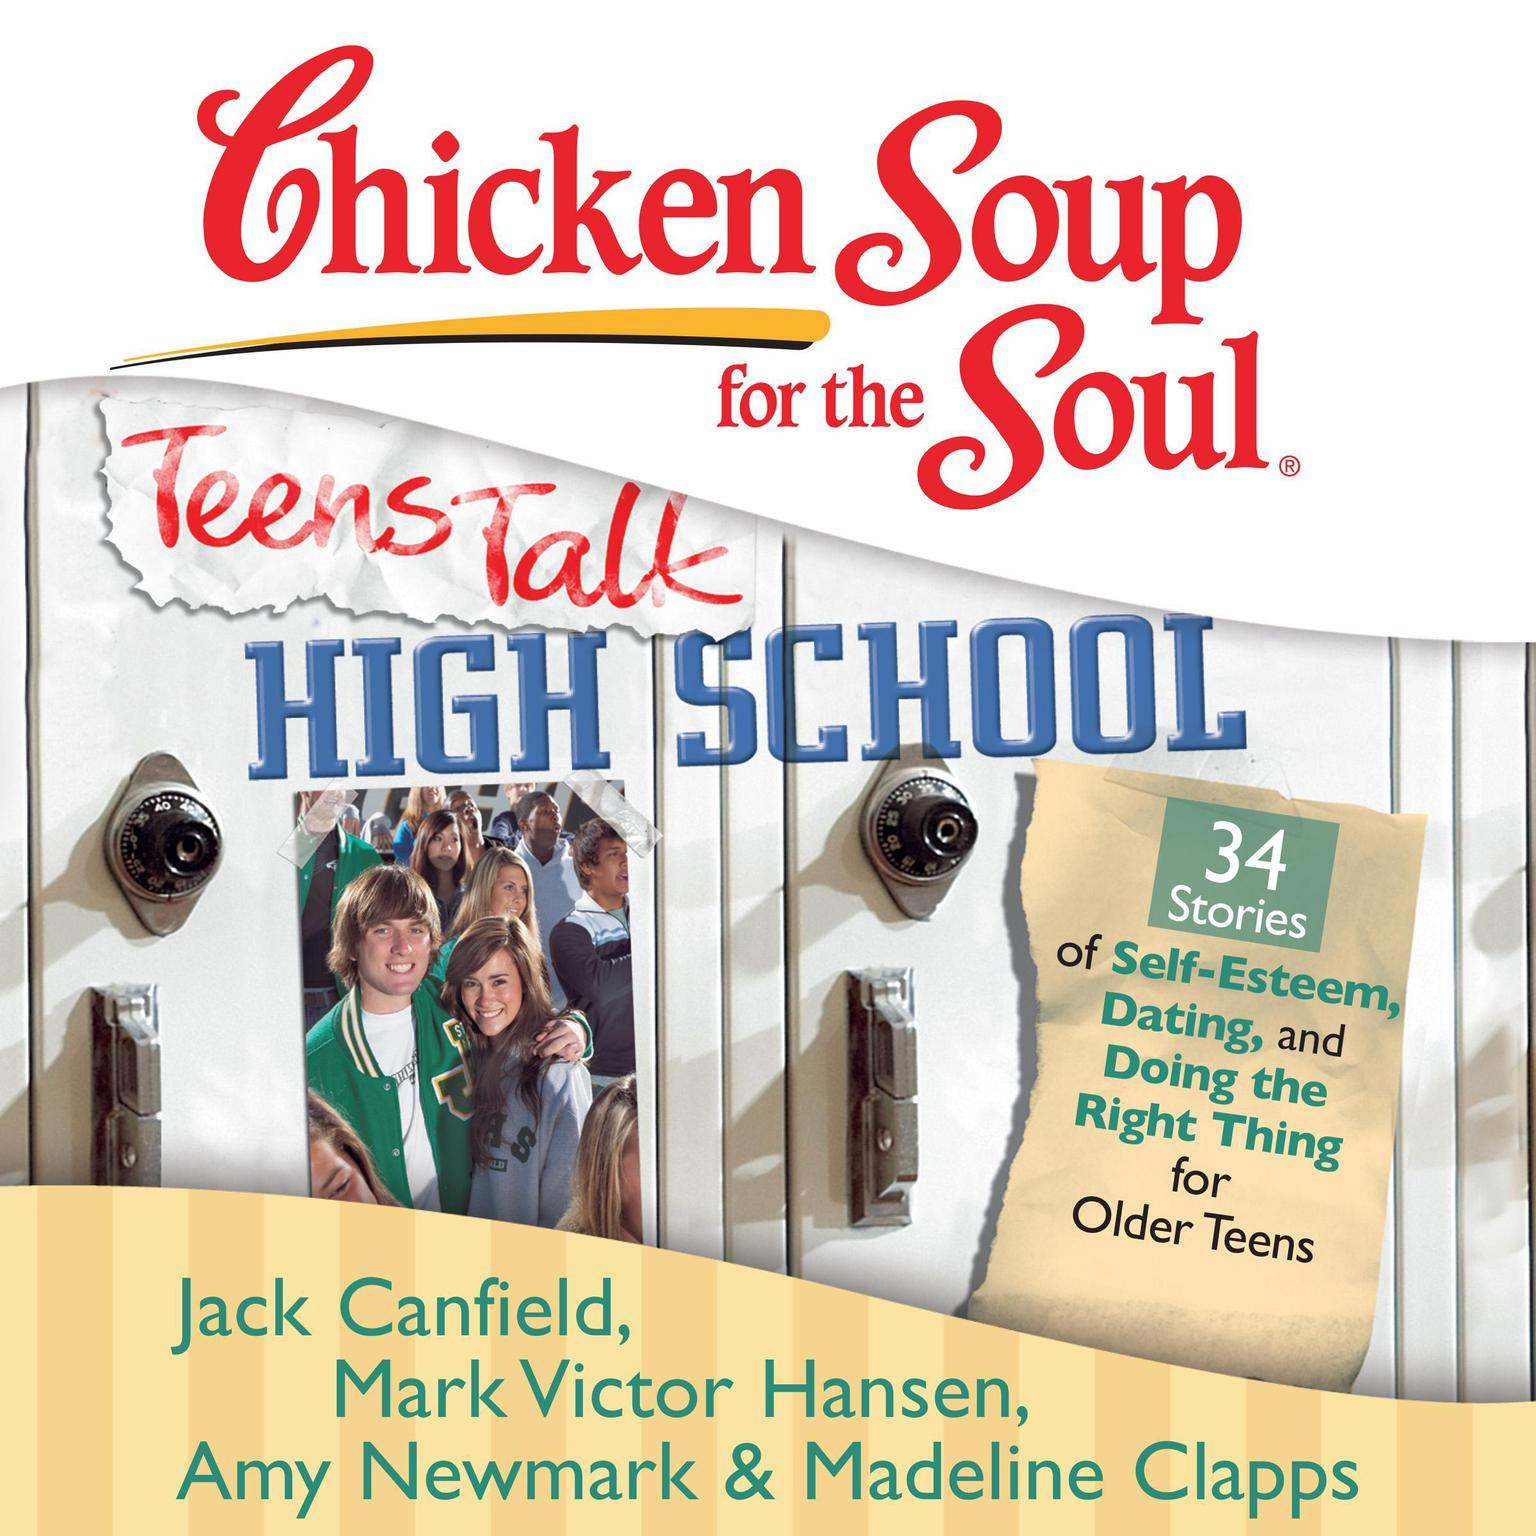 Printable Chicken Soup for the Soul: Teens Talk High School - 34 Stories of Self-Esteem, Dating, and Doing the Right Thing for Older Teens Audiobook Cover Art